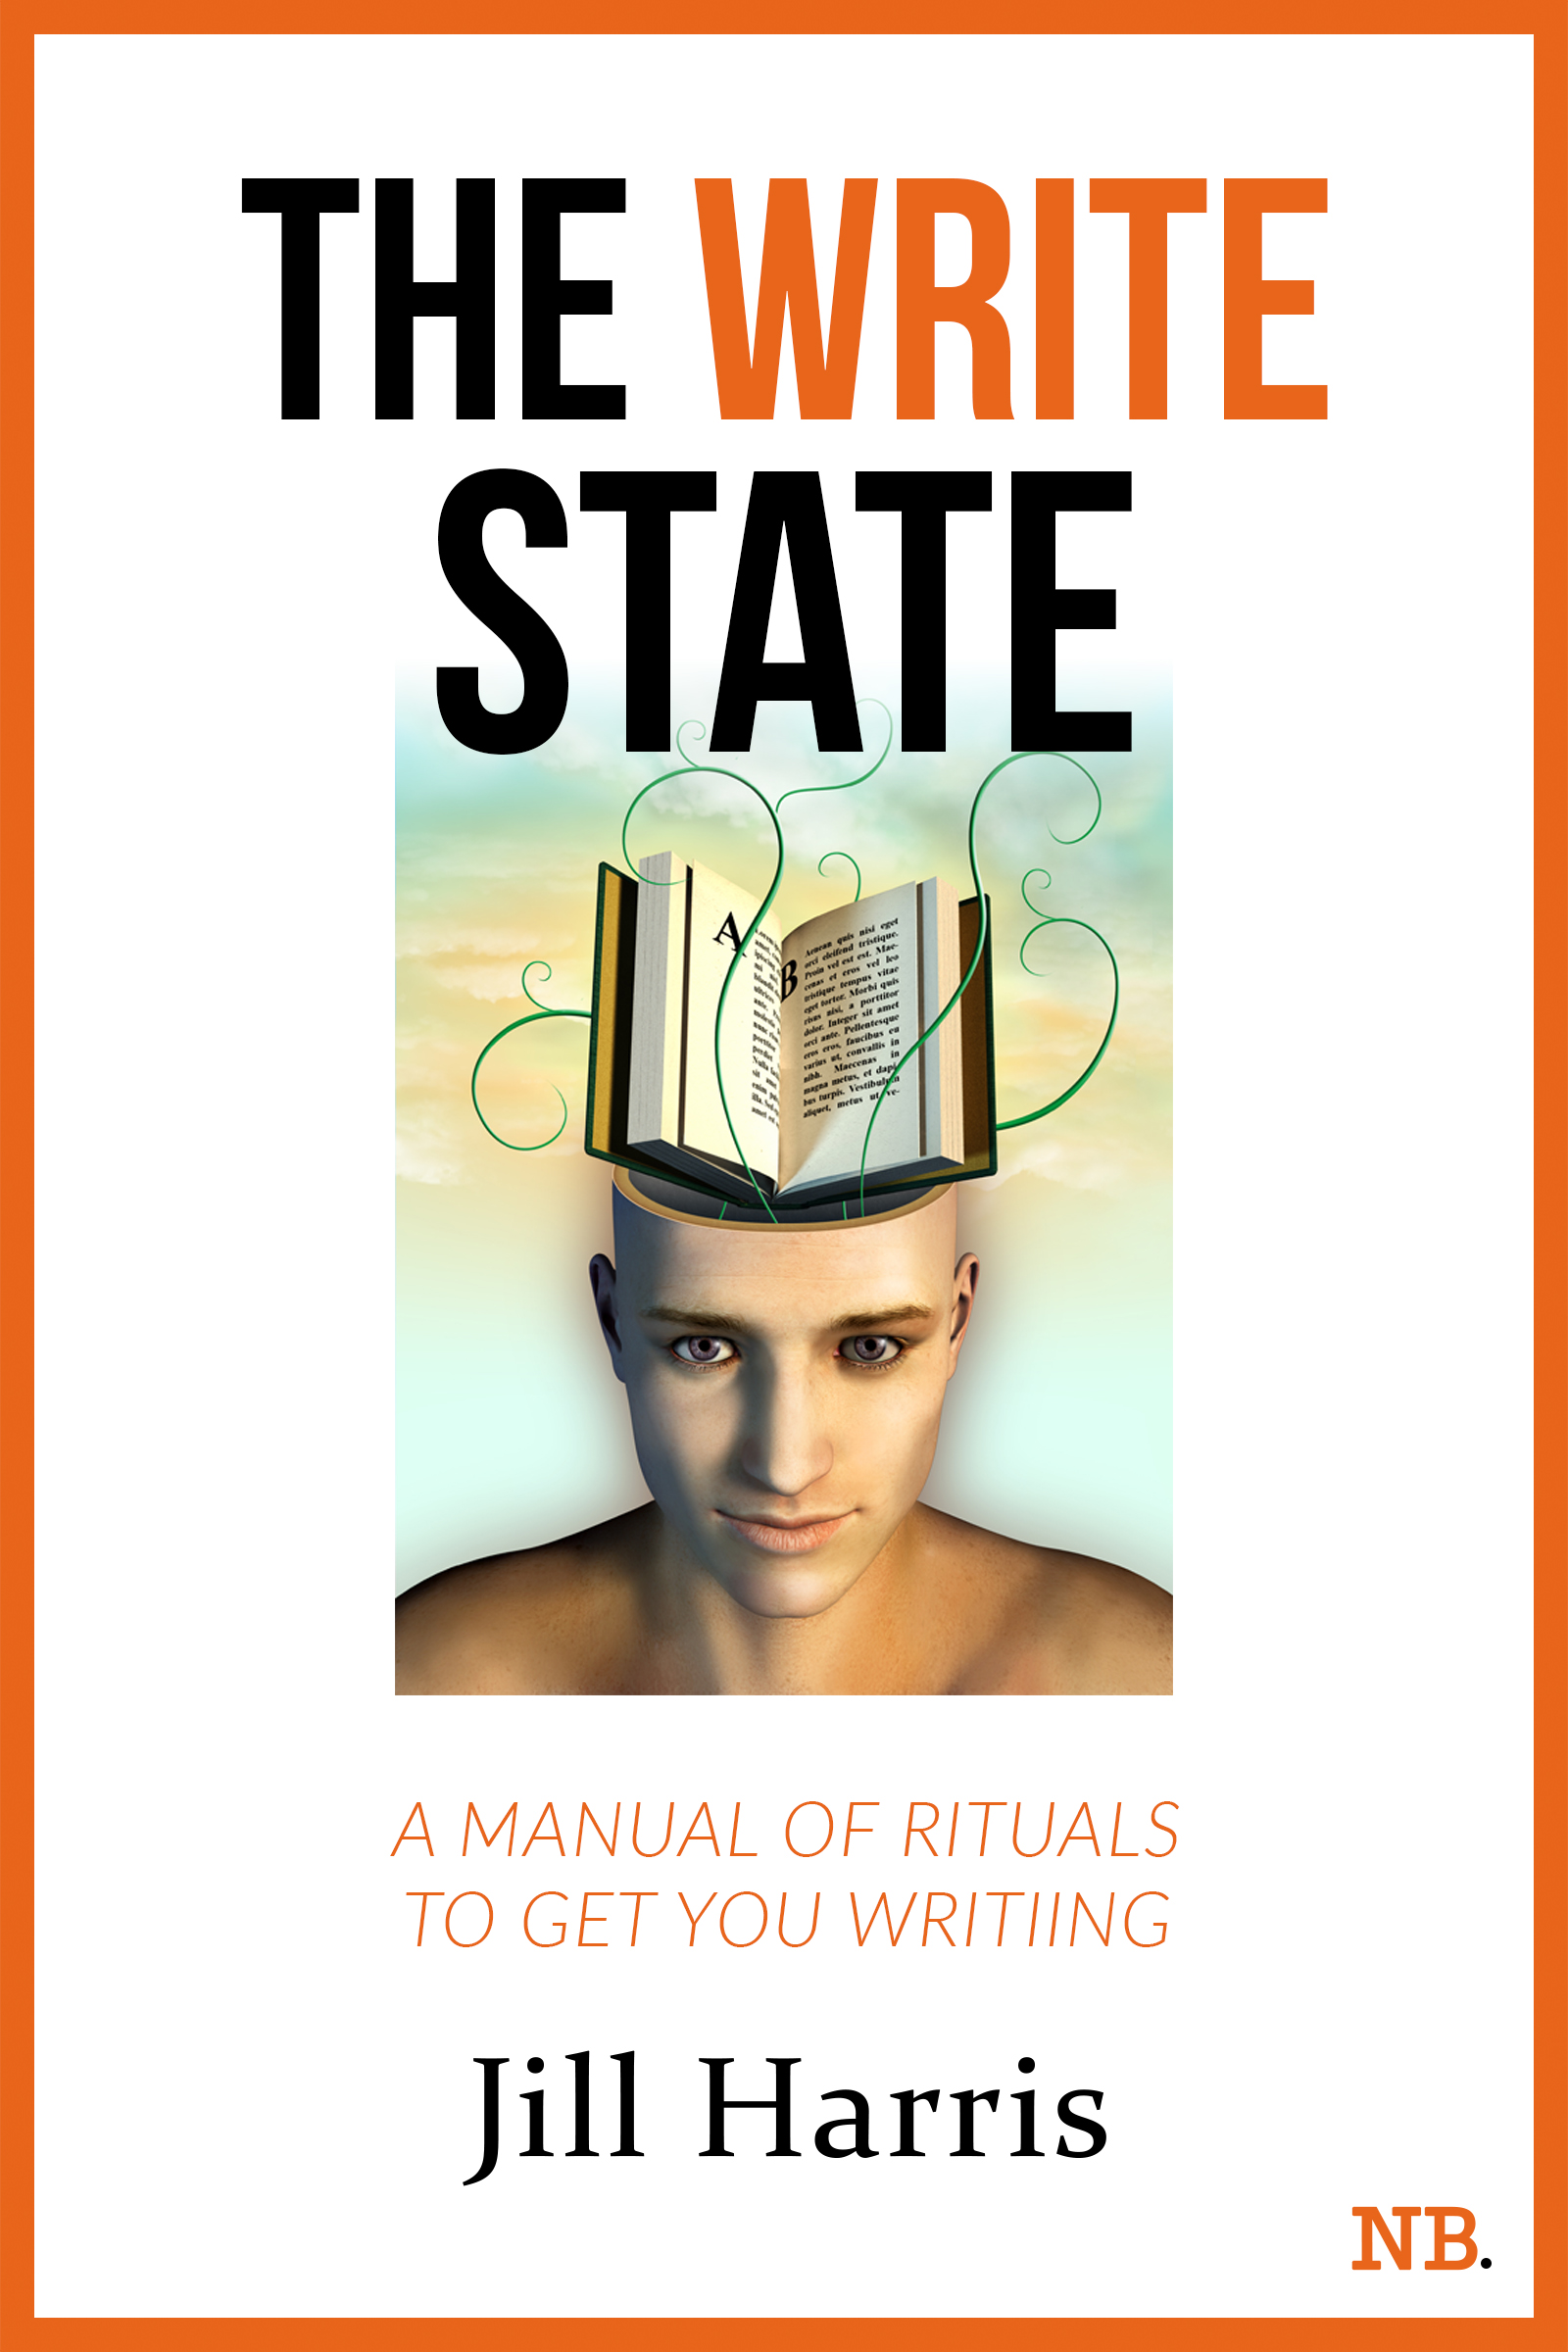 the-write-state-front-cover-rev-1